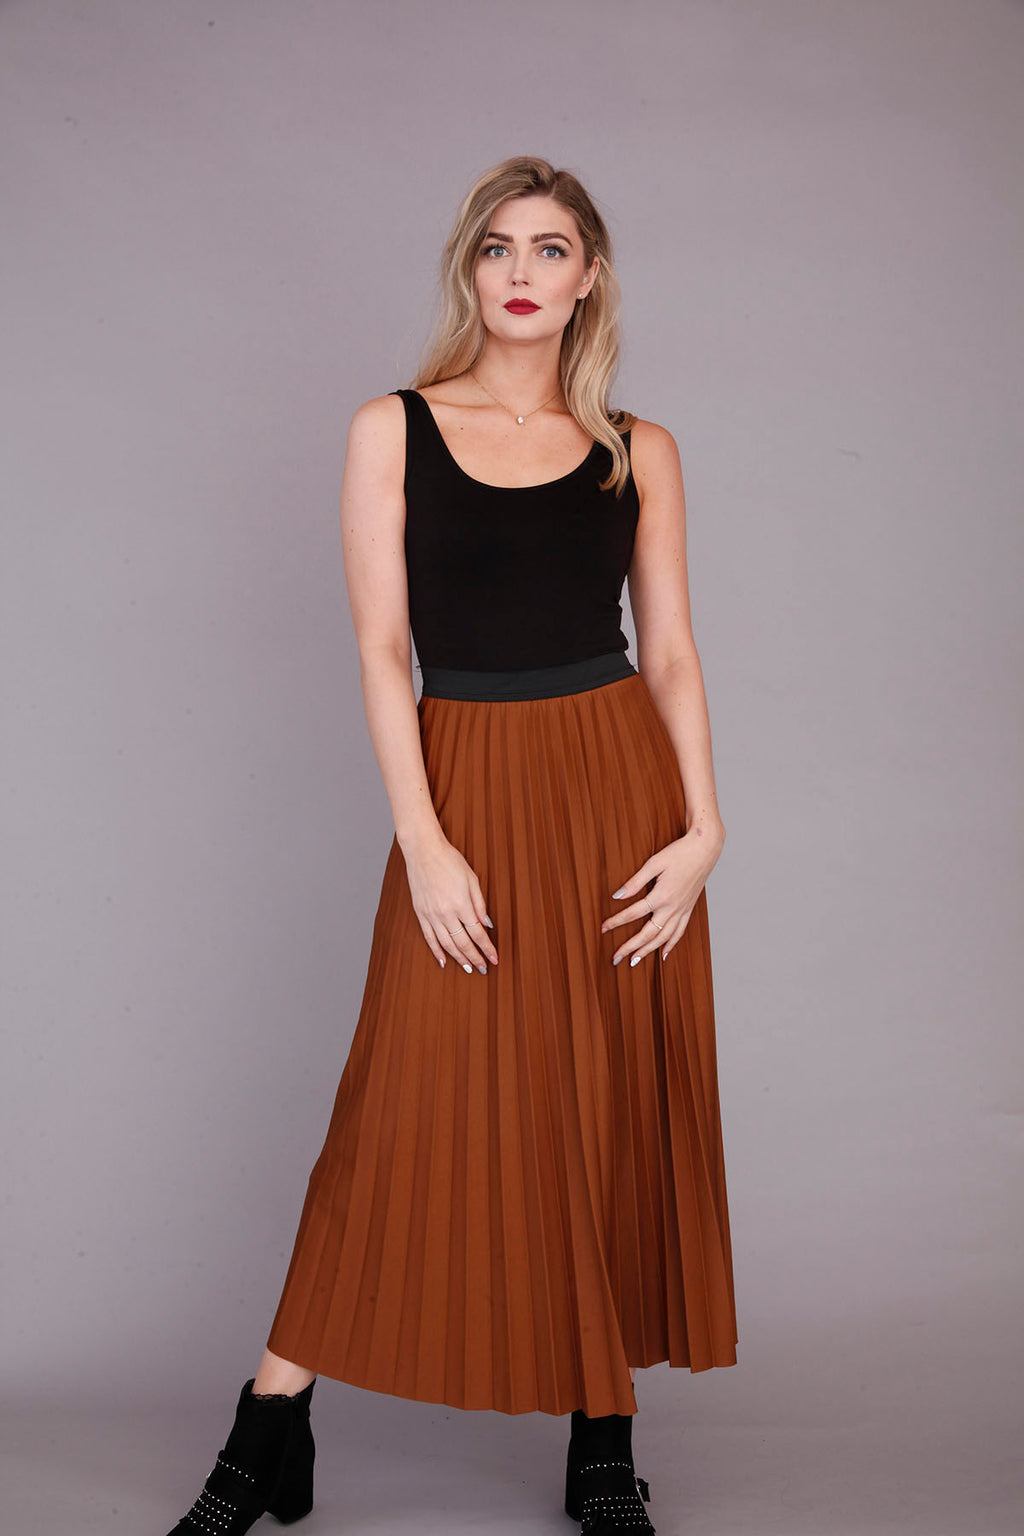 tan pleated skirt